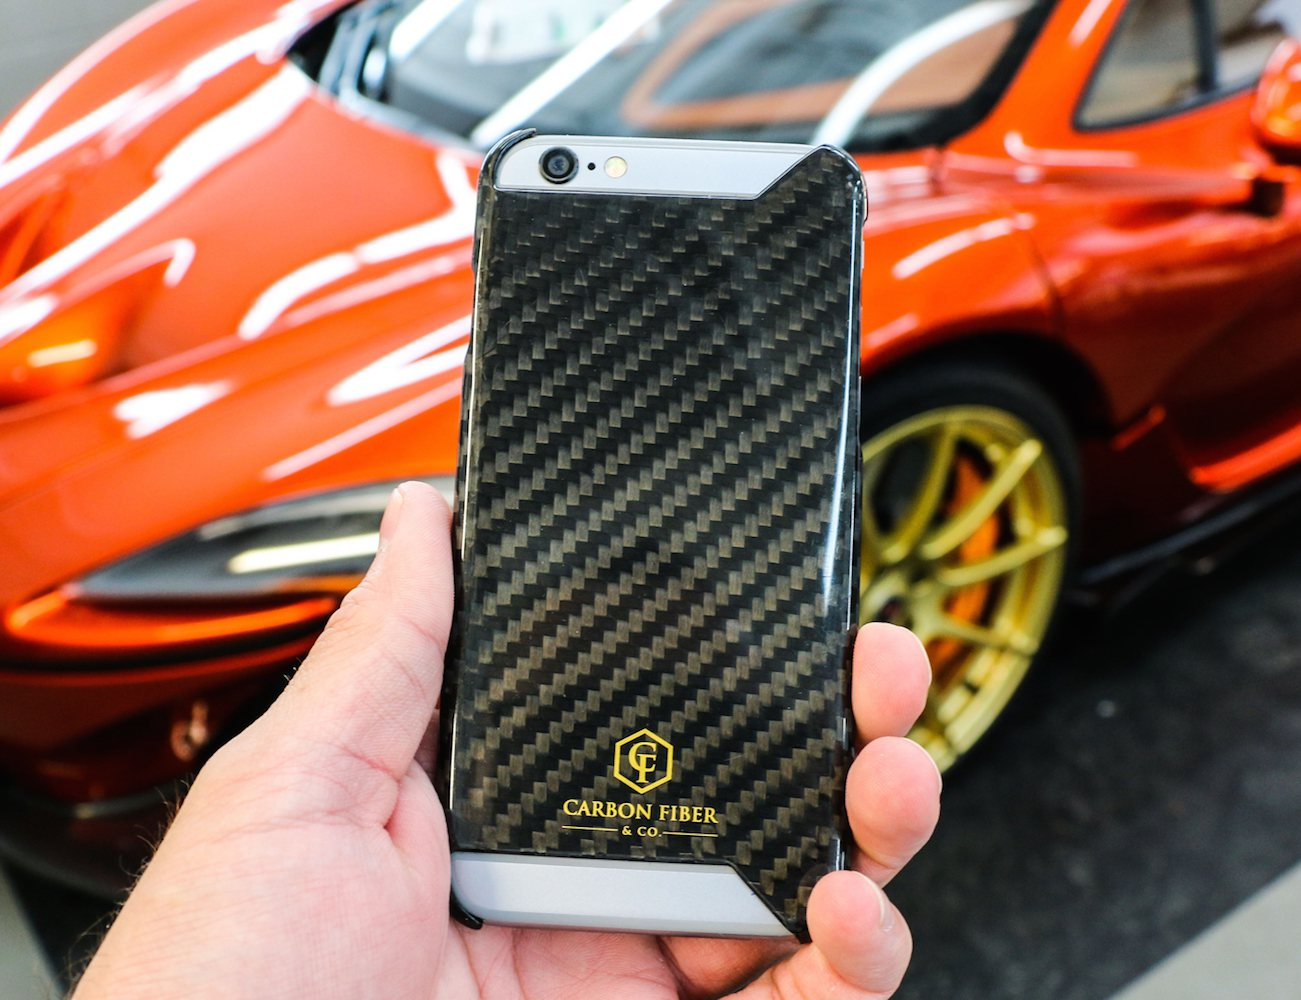 Carbon+Fiber+IPhone+6+Case+By+Carbon+Fiber+%26amp%3B+Co.